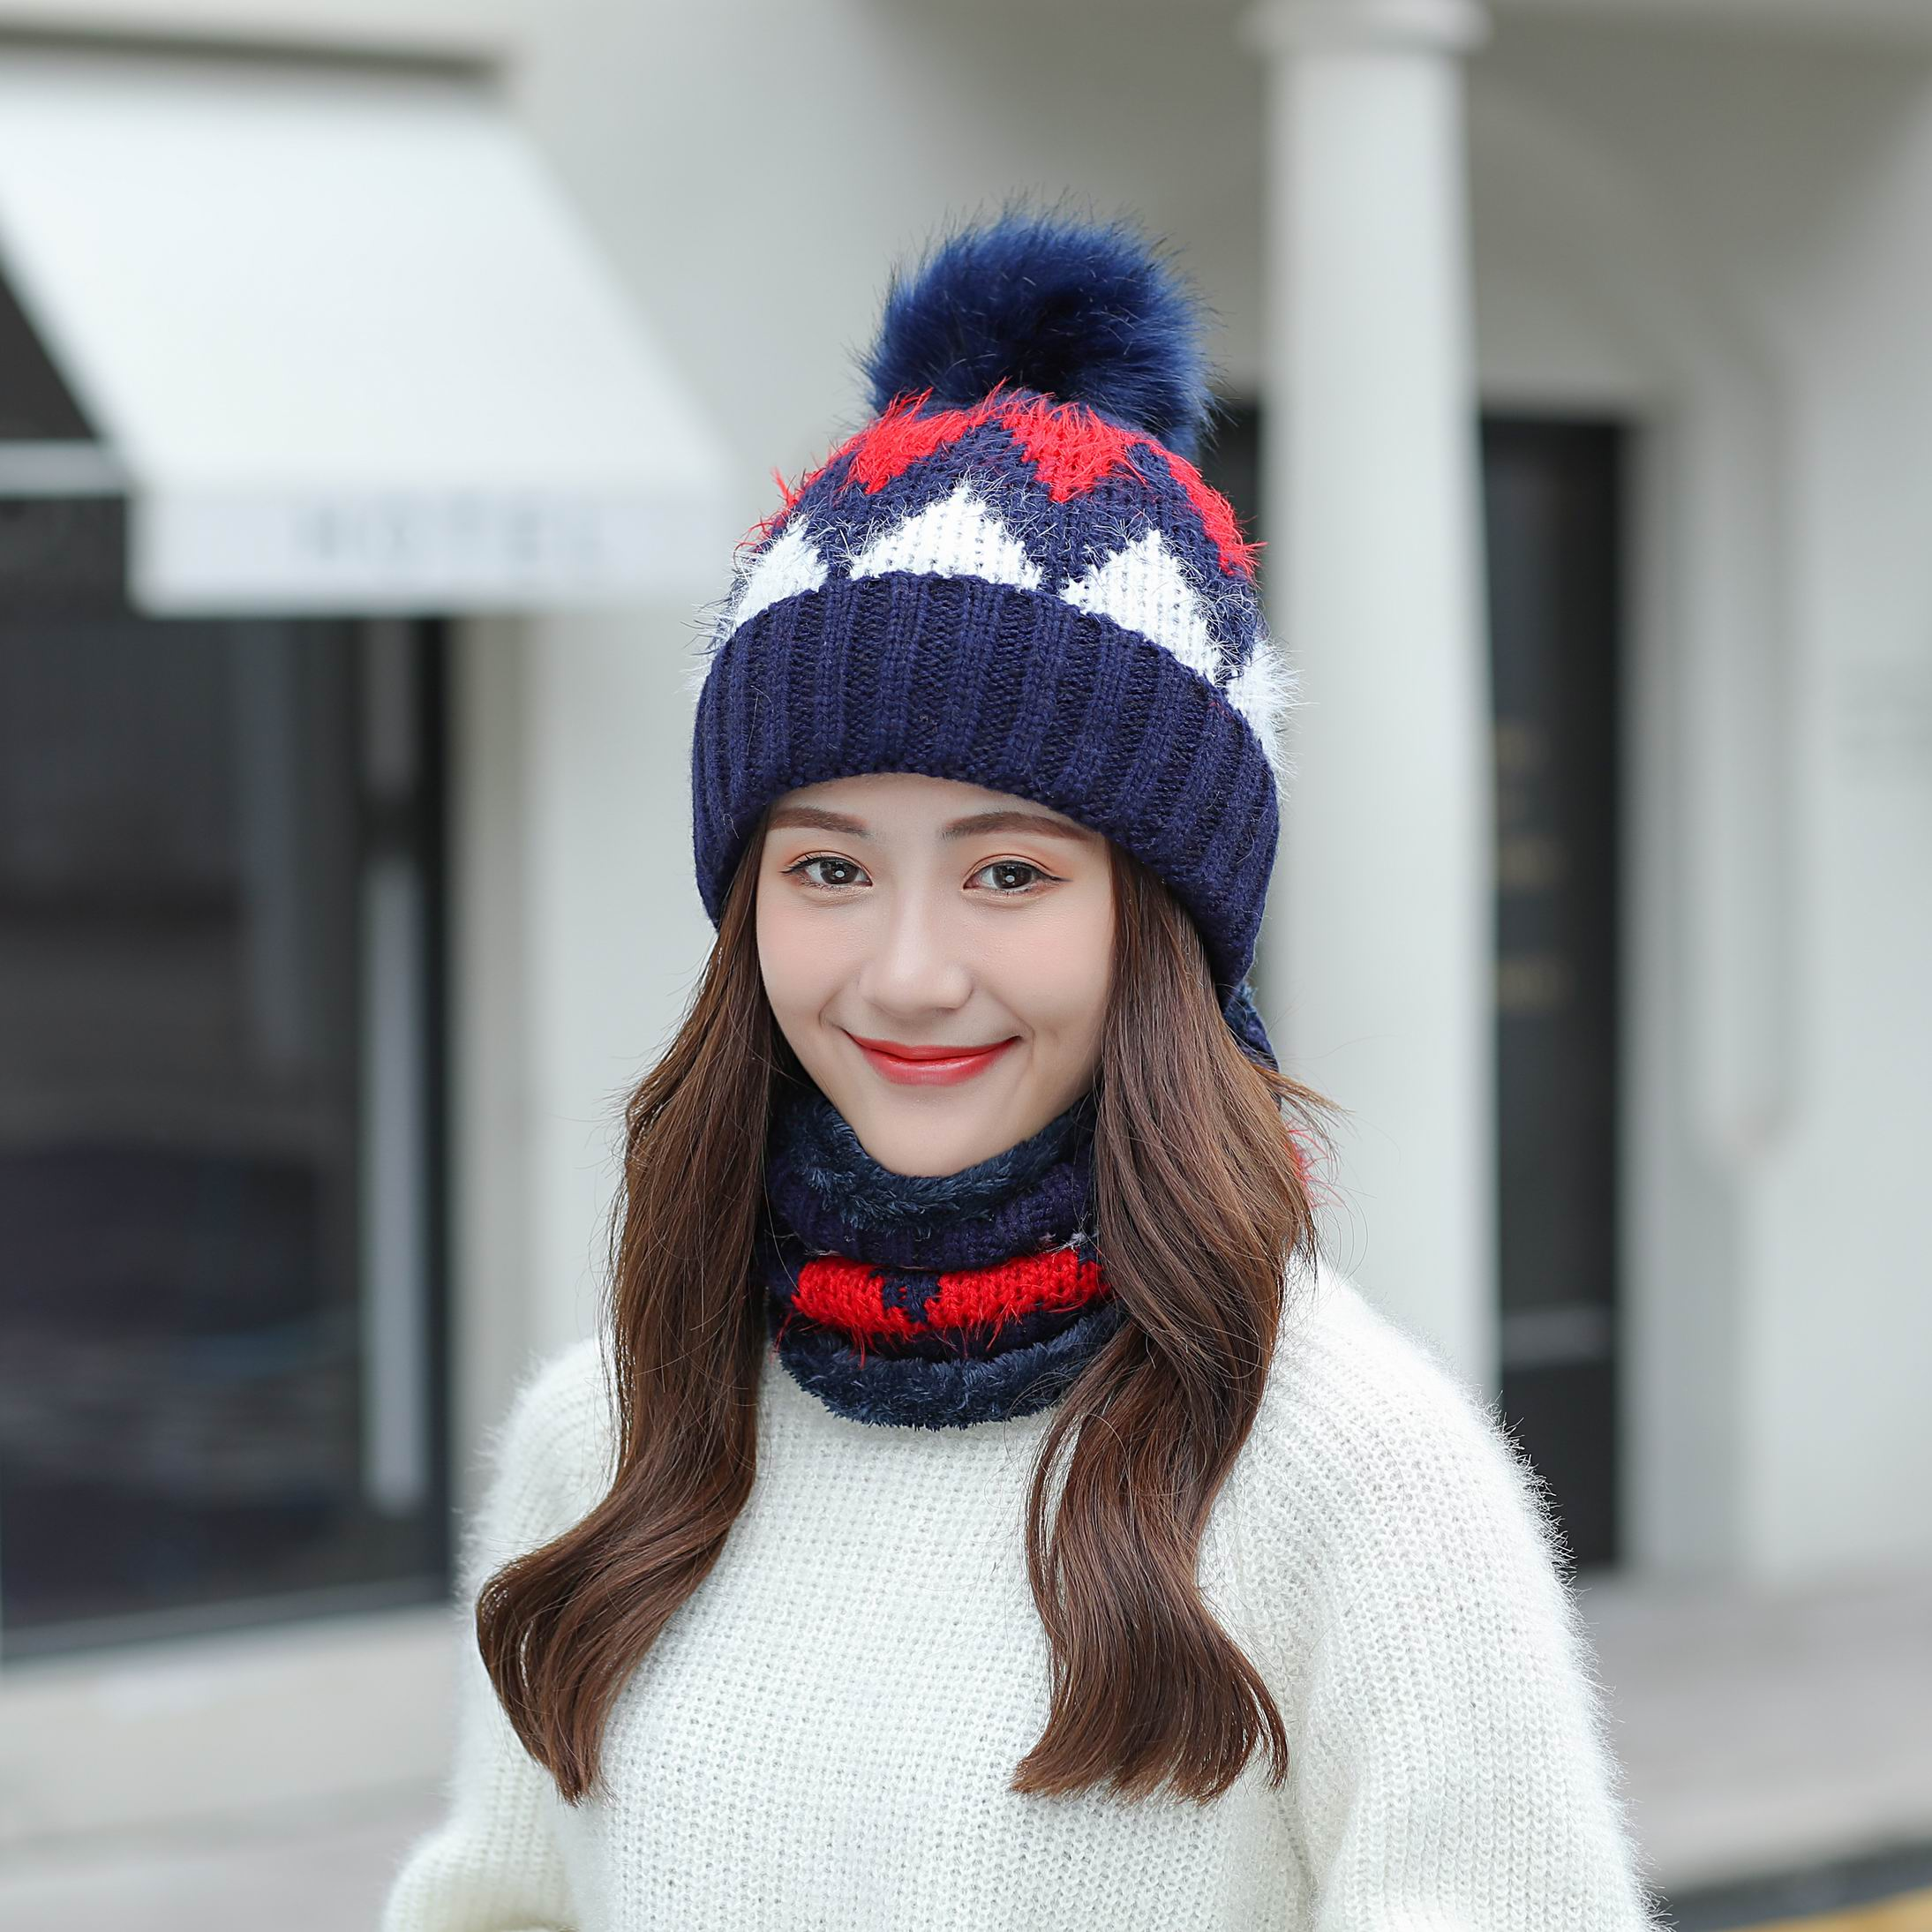 2020 High Quality Autumn Winter Women's Hat Set Knitted Wool Warm Cap Scarf Thick Windproof Balaclava Hat Scarf Set For Girls